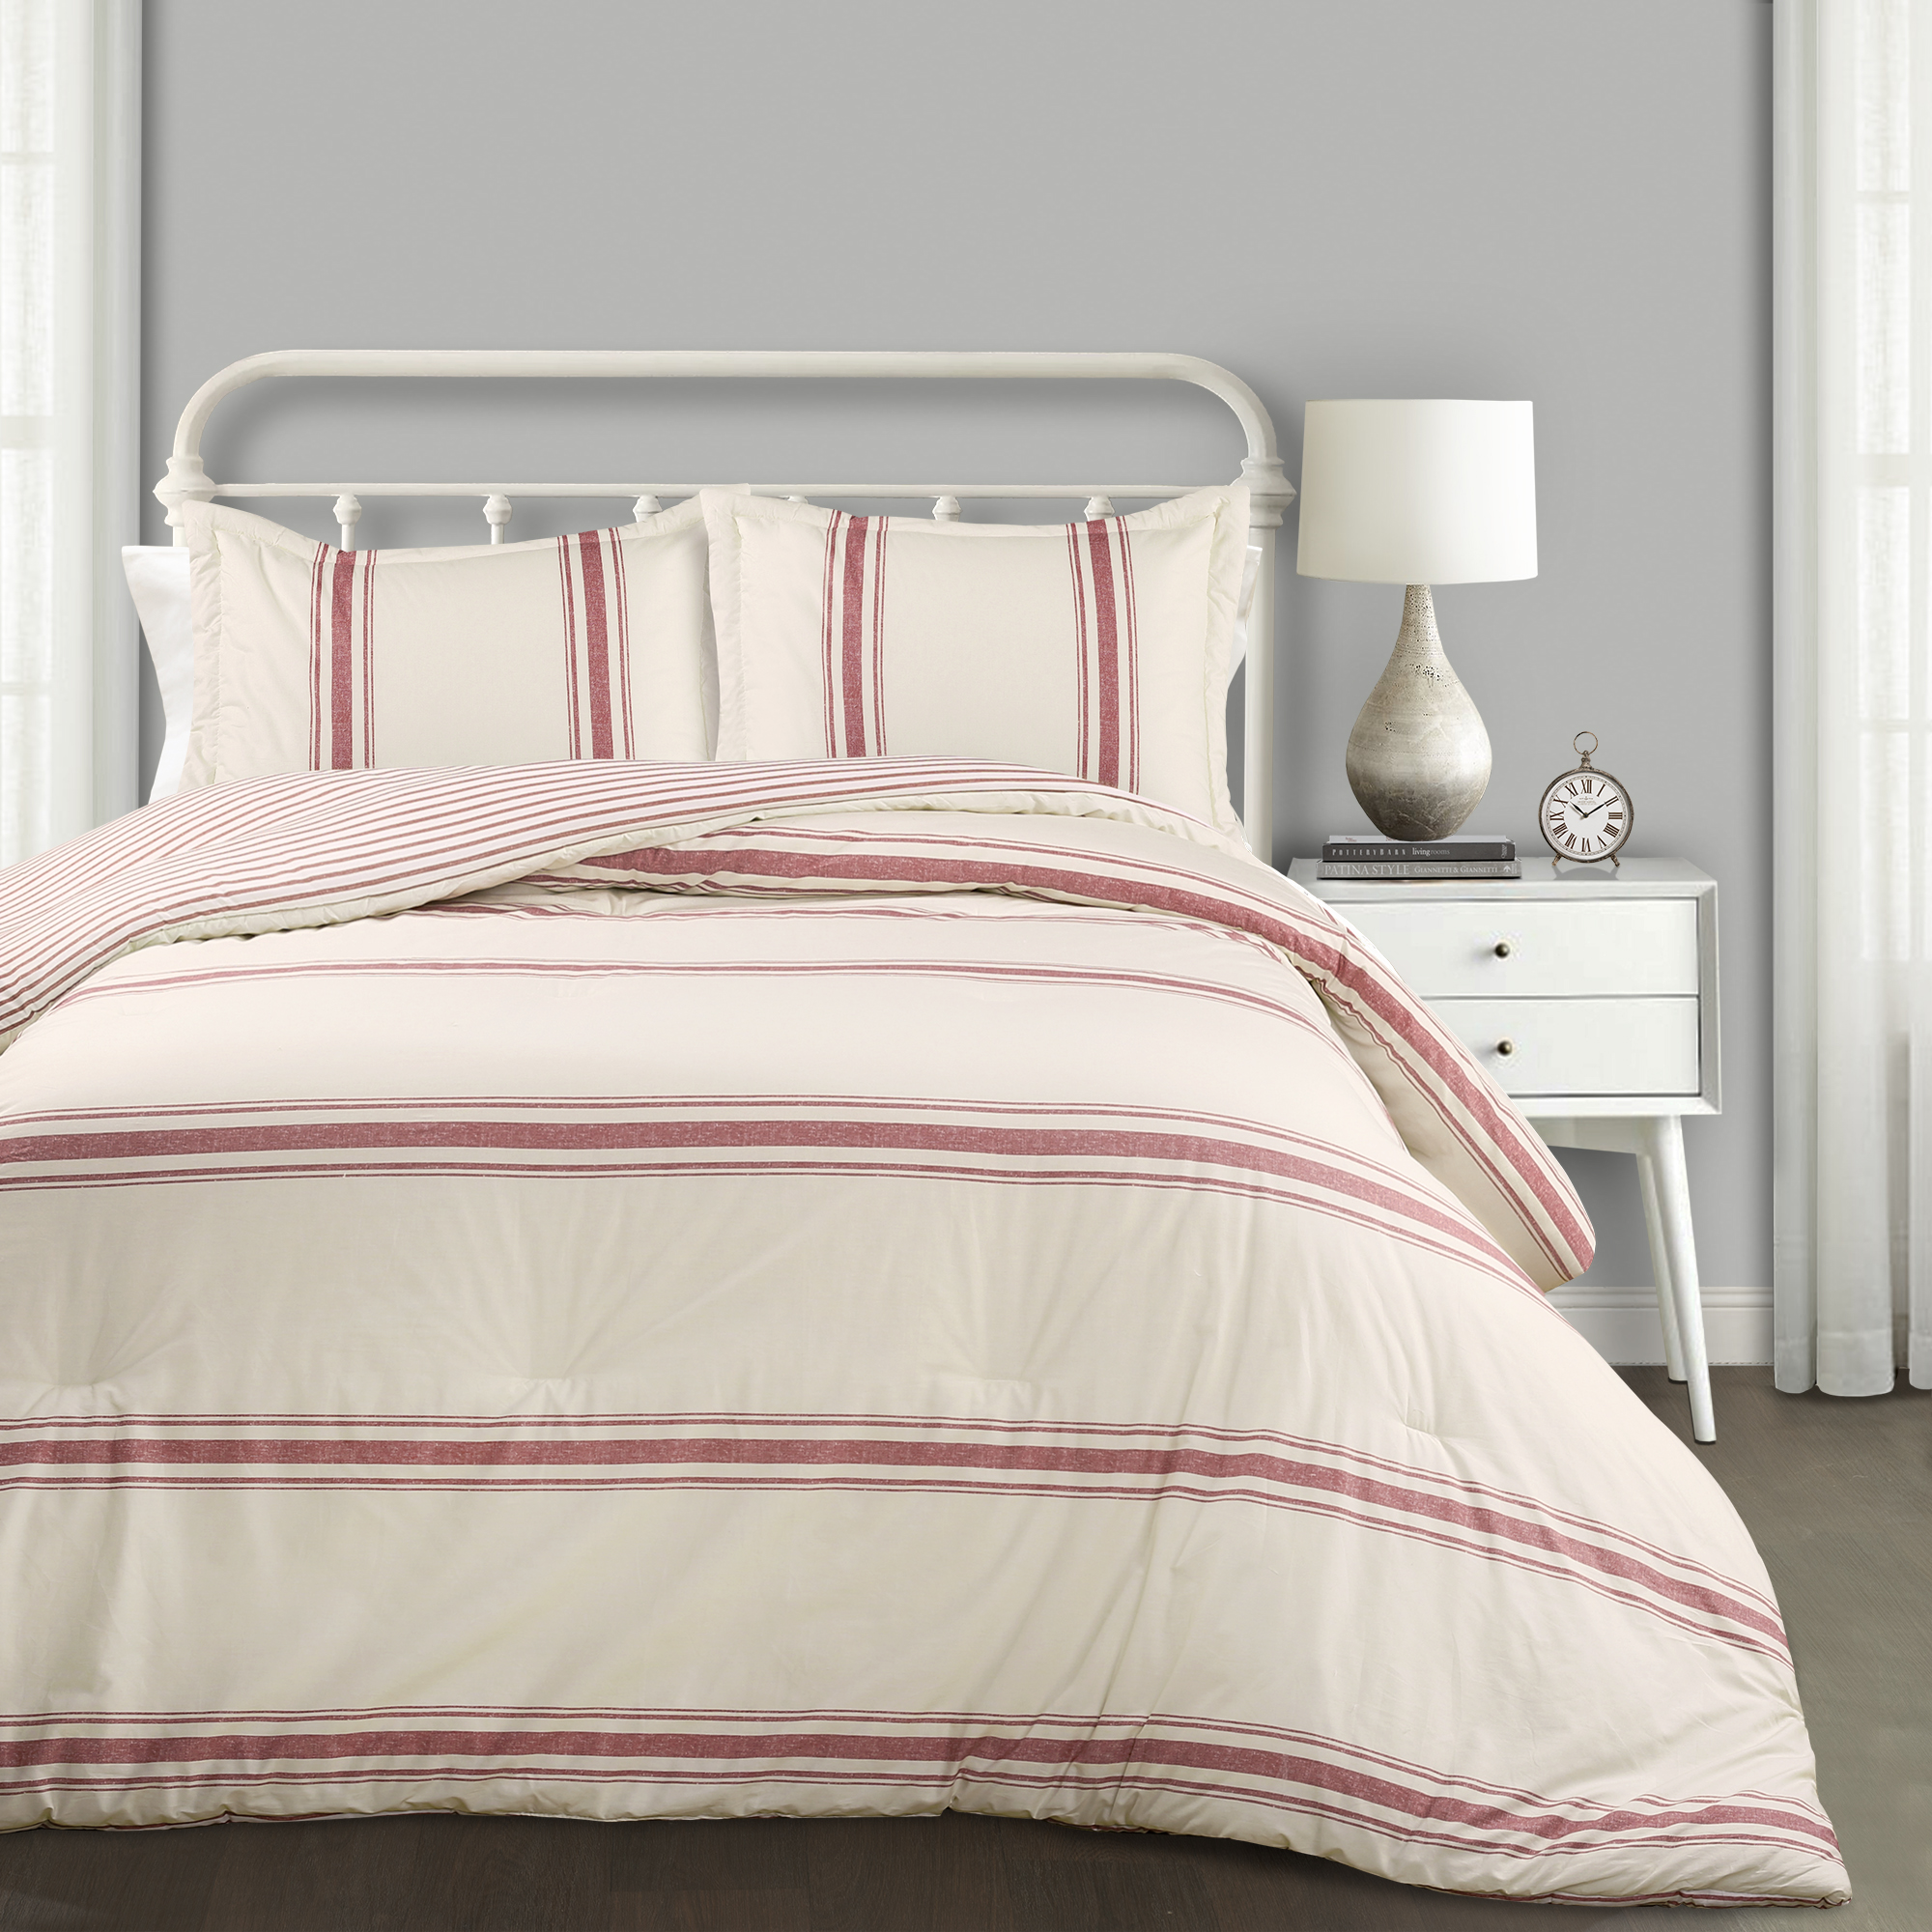 Farmhouse Stripe Comforter Blue 3Pc Set Full/Queen